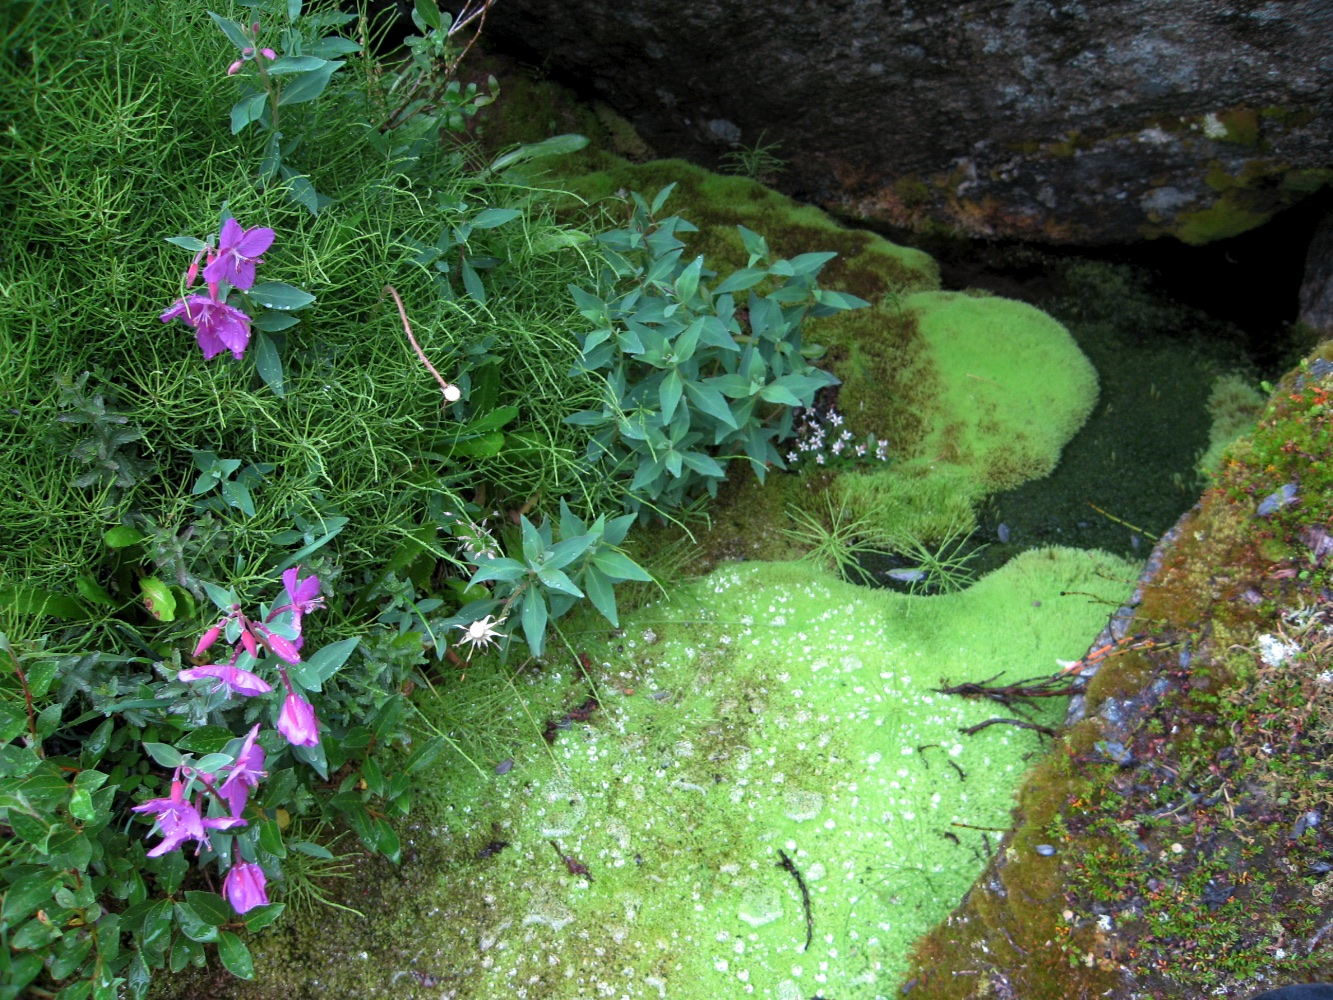 There were some very vibrant green mosses growing around streams